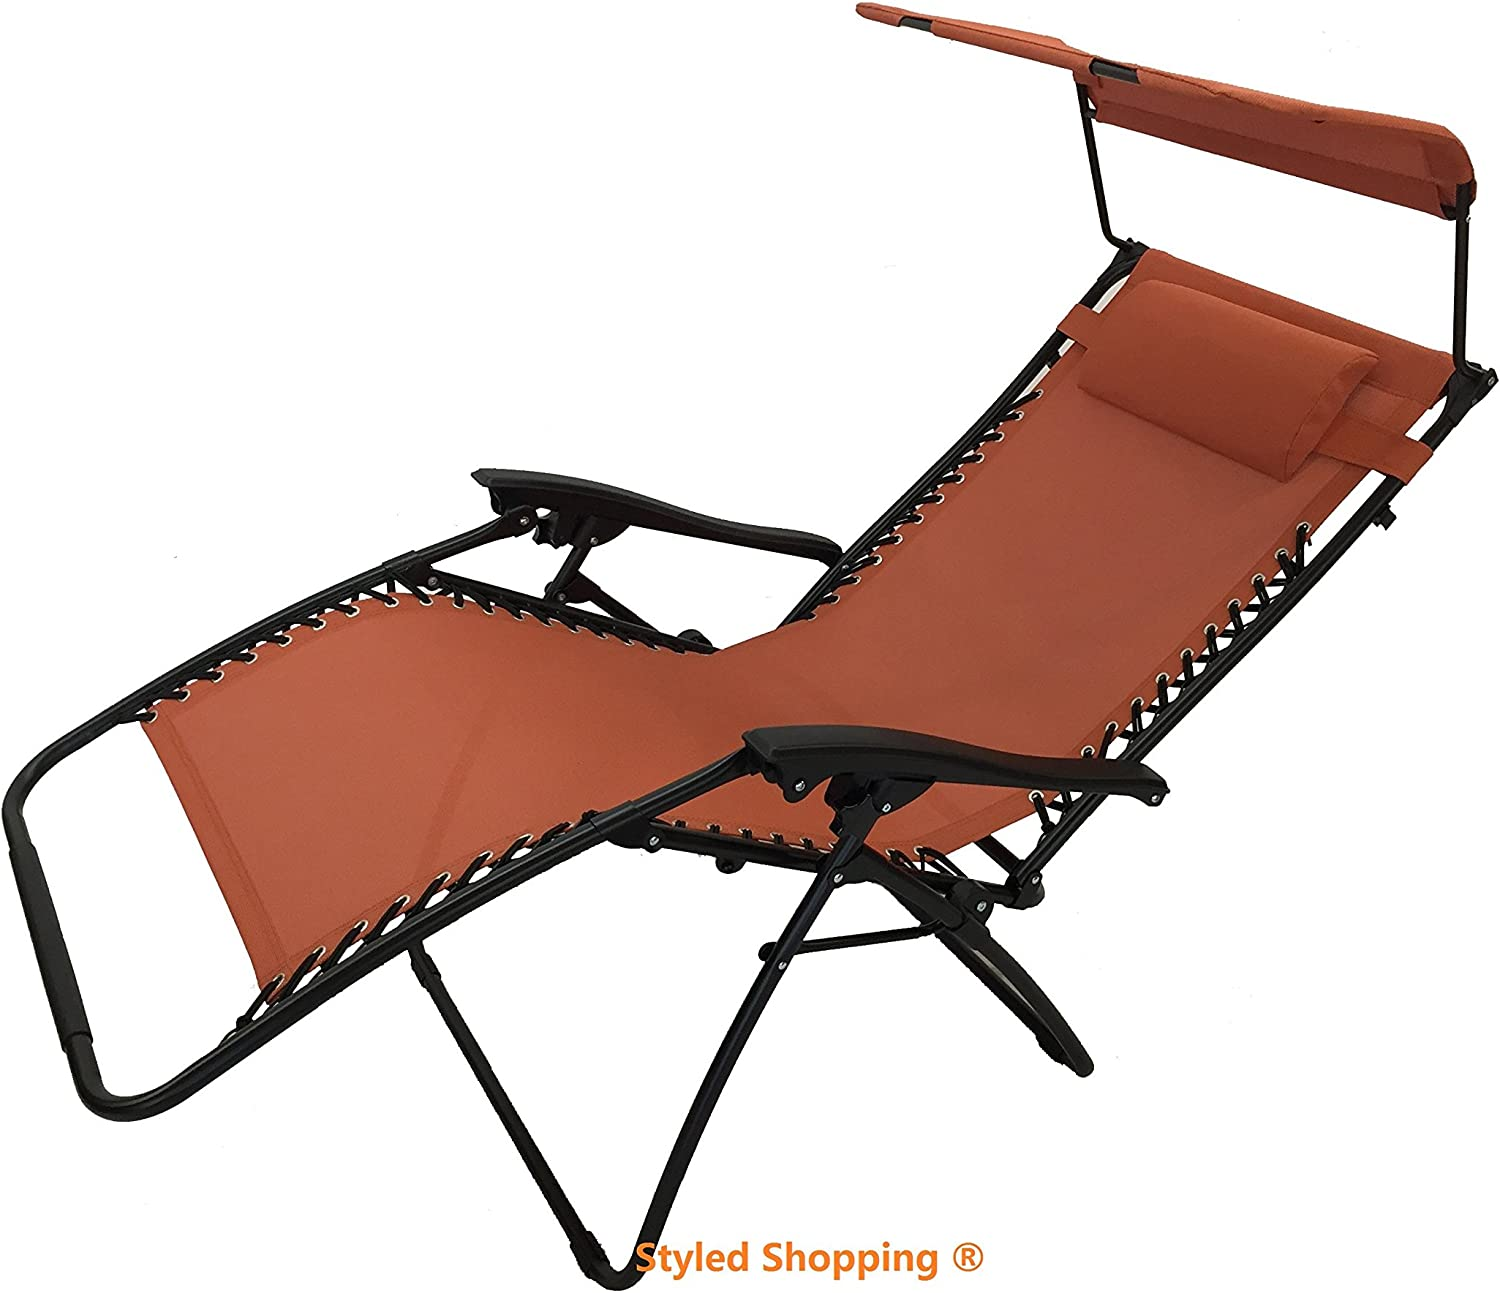 Deluxe Oversized Extra Large Zero Gravity Chair with Canopy + Tray - Terra Cotta